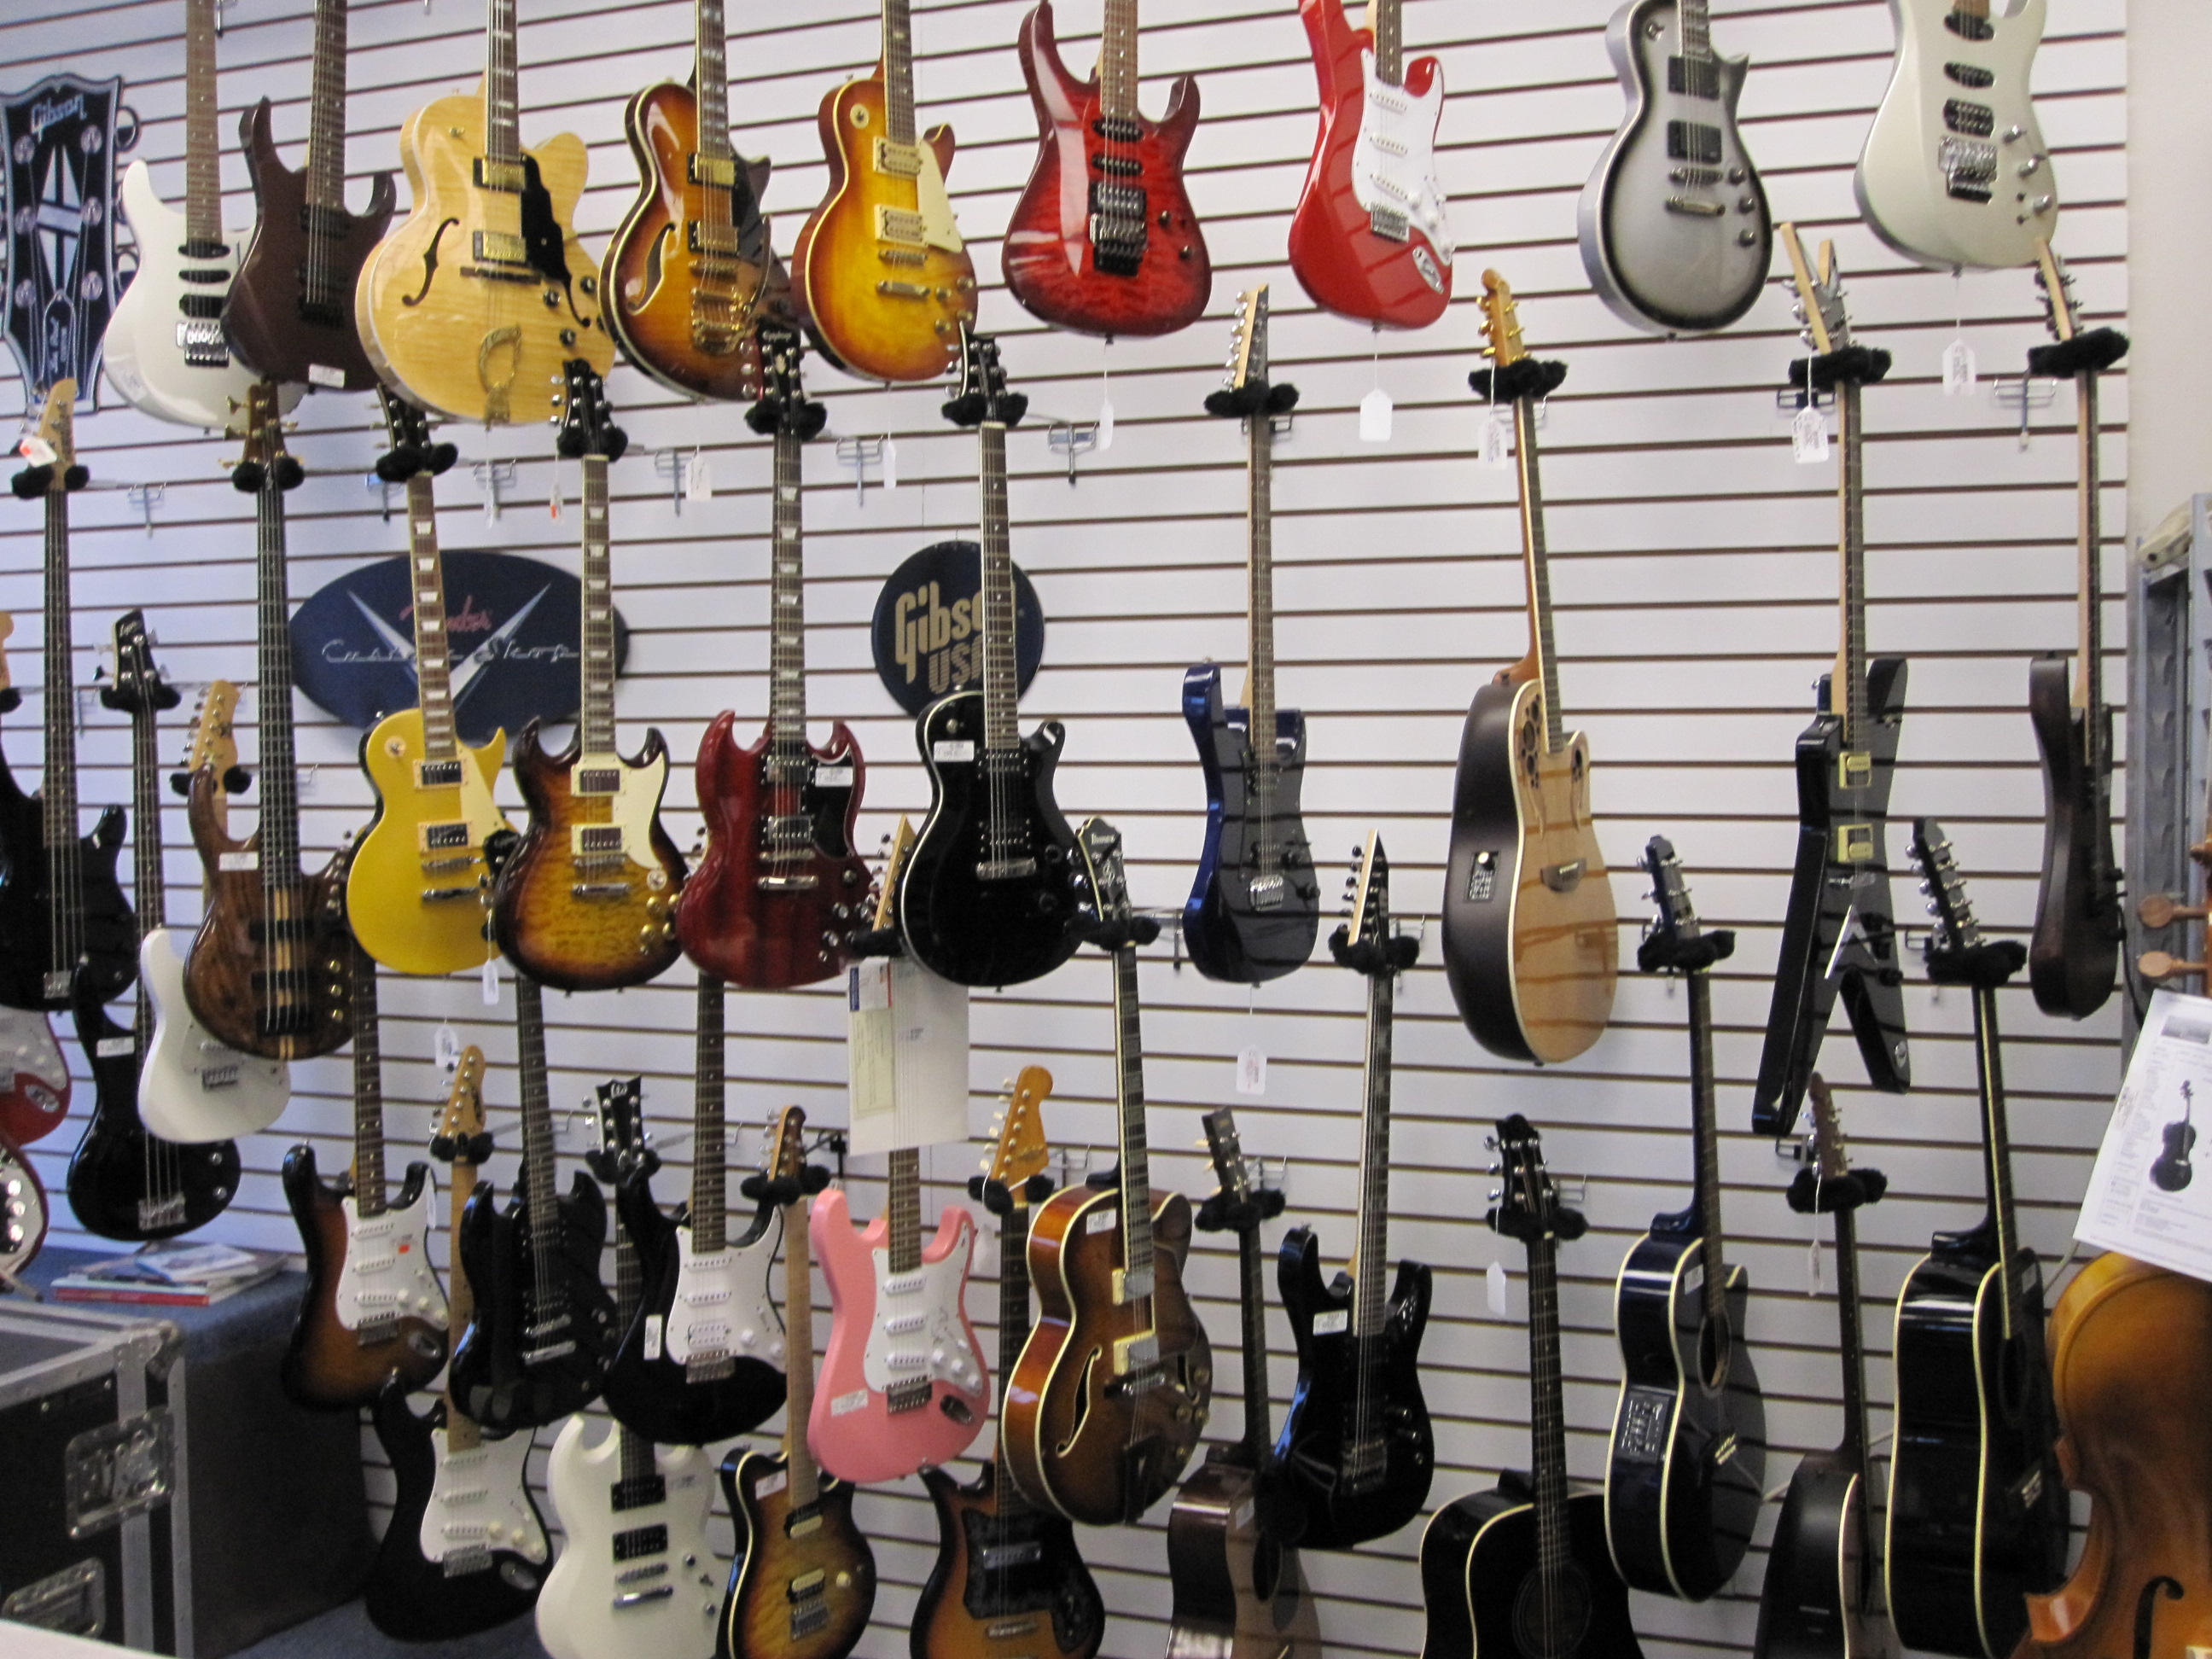 Our Guitar Wall